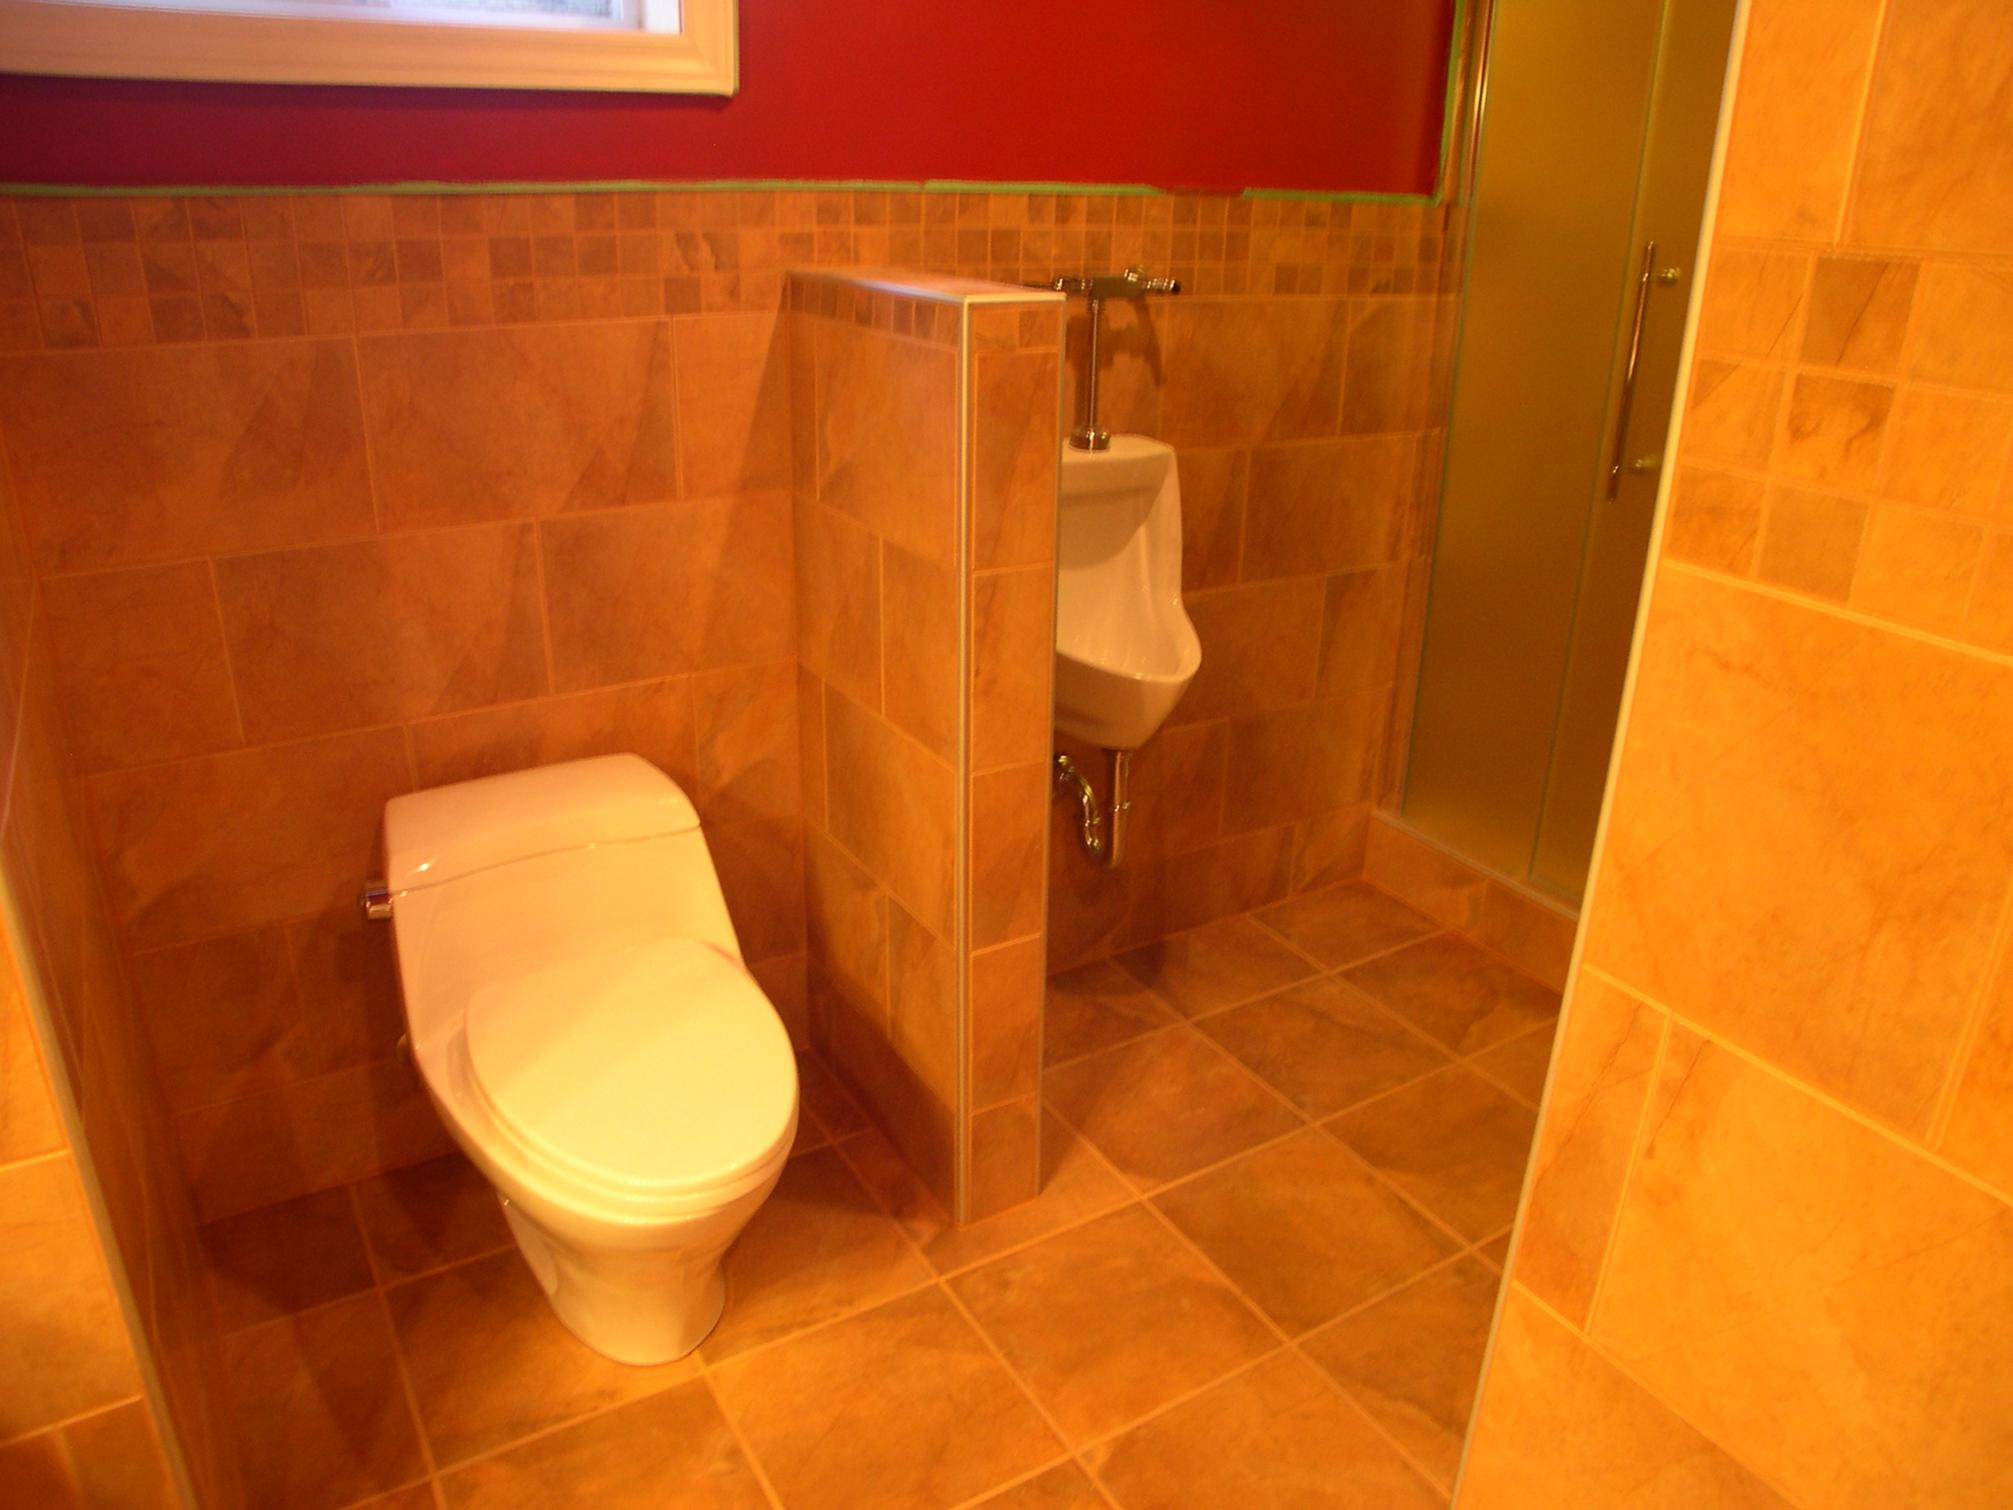 Urinal In The House General Discussion Contractor Talk